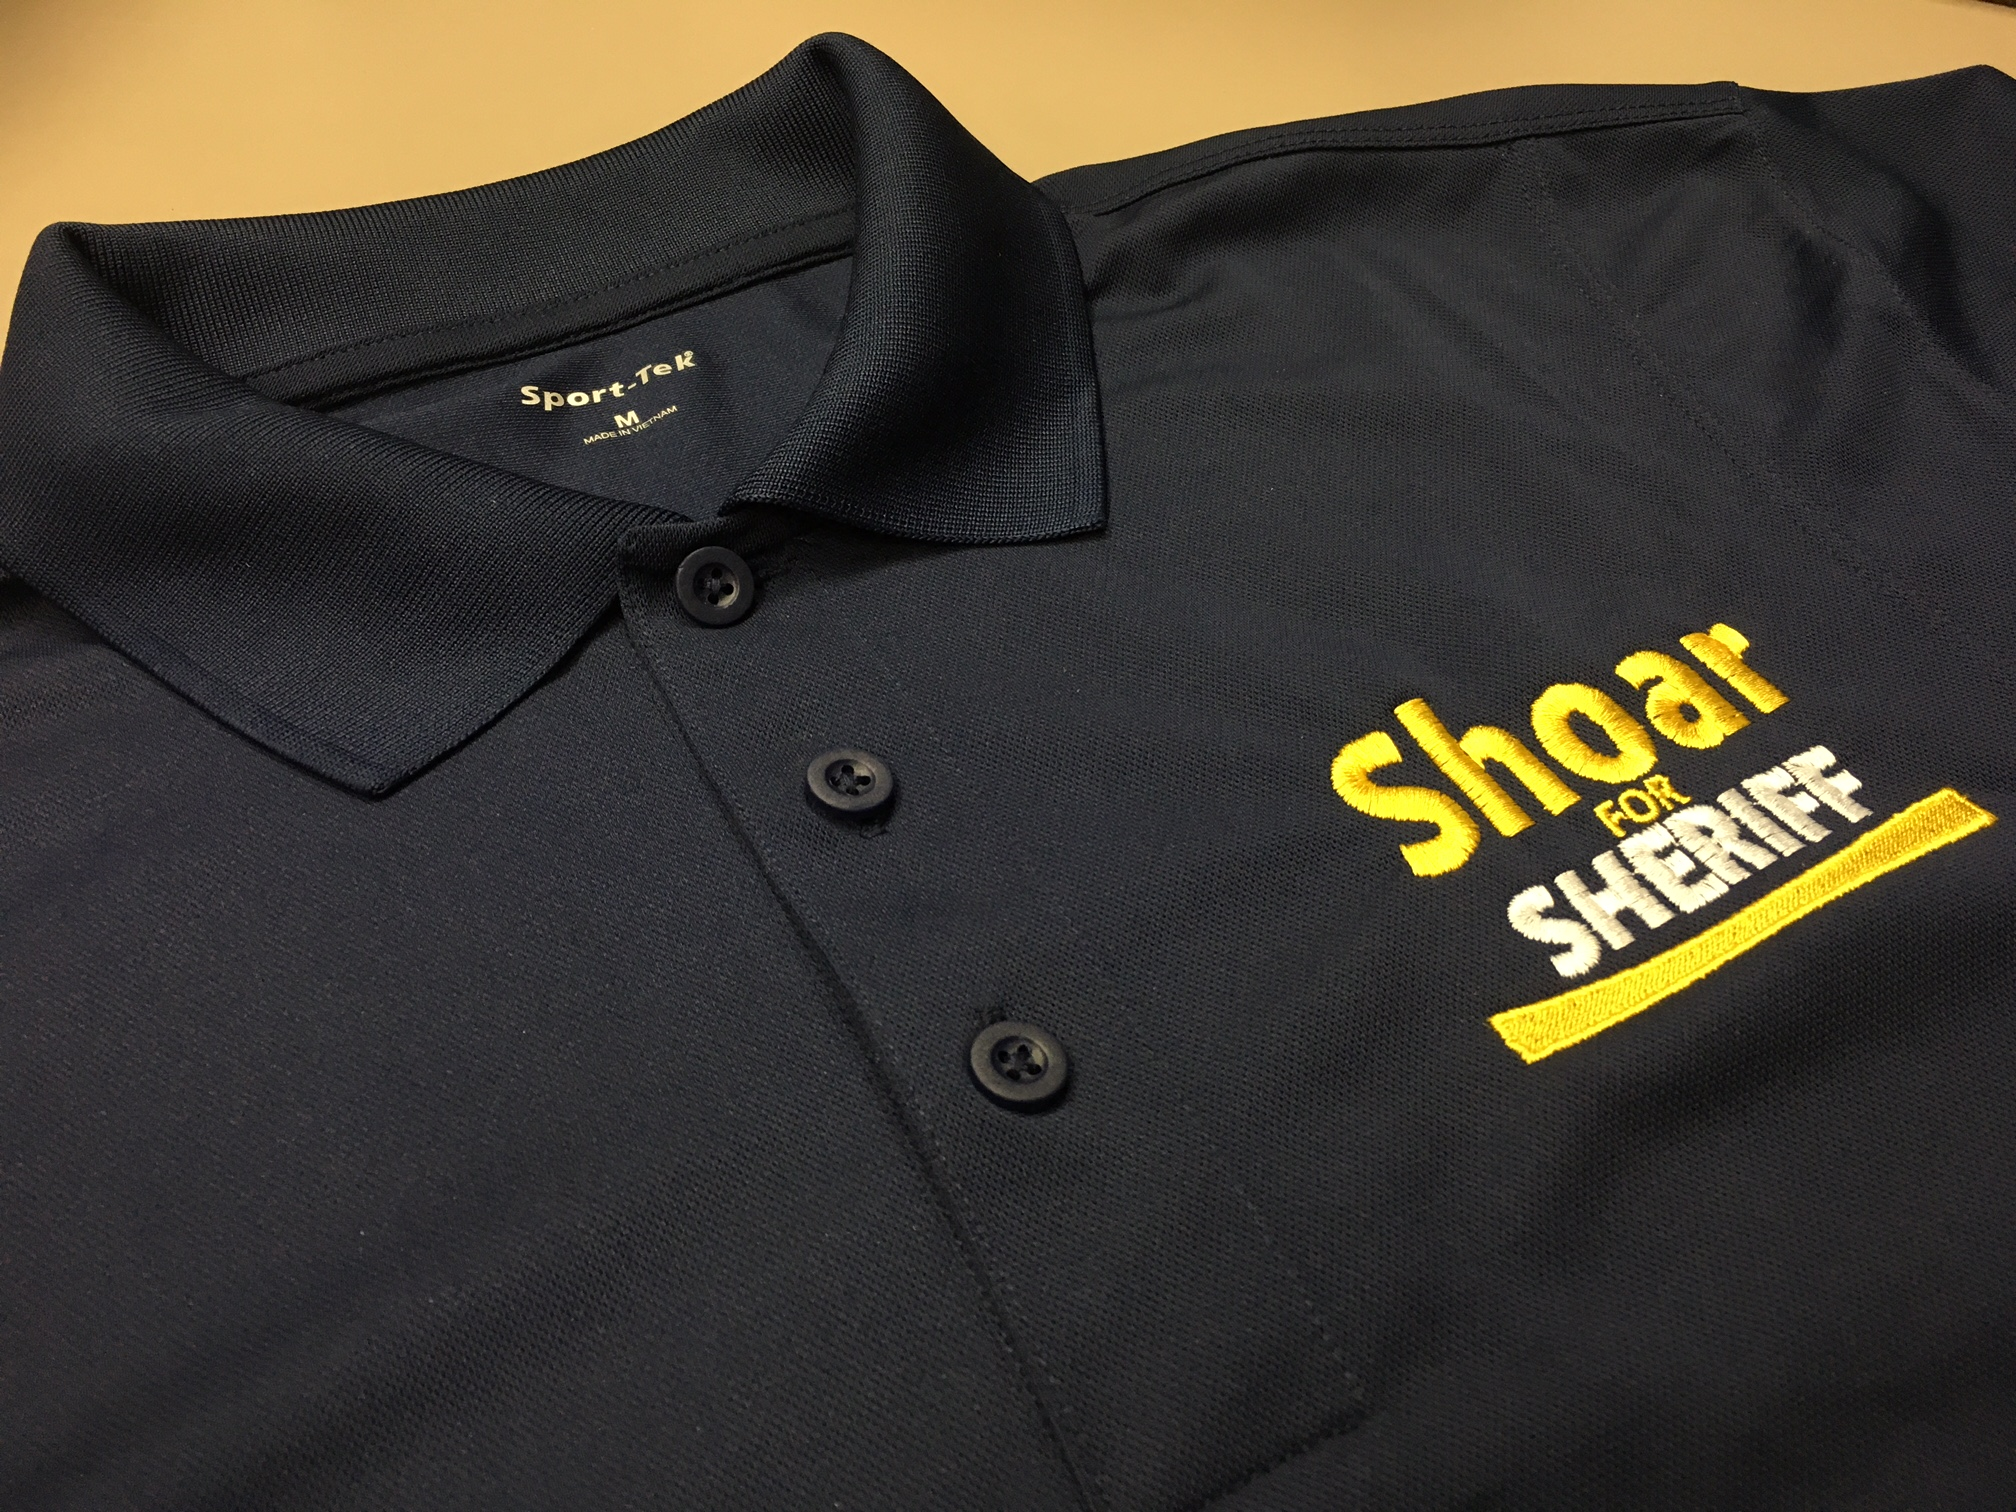 Shoar for Sheriff Polo